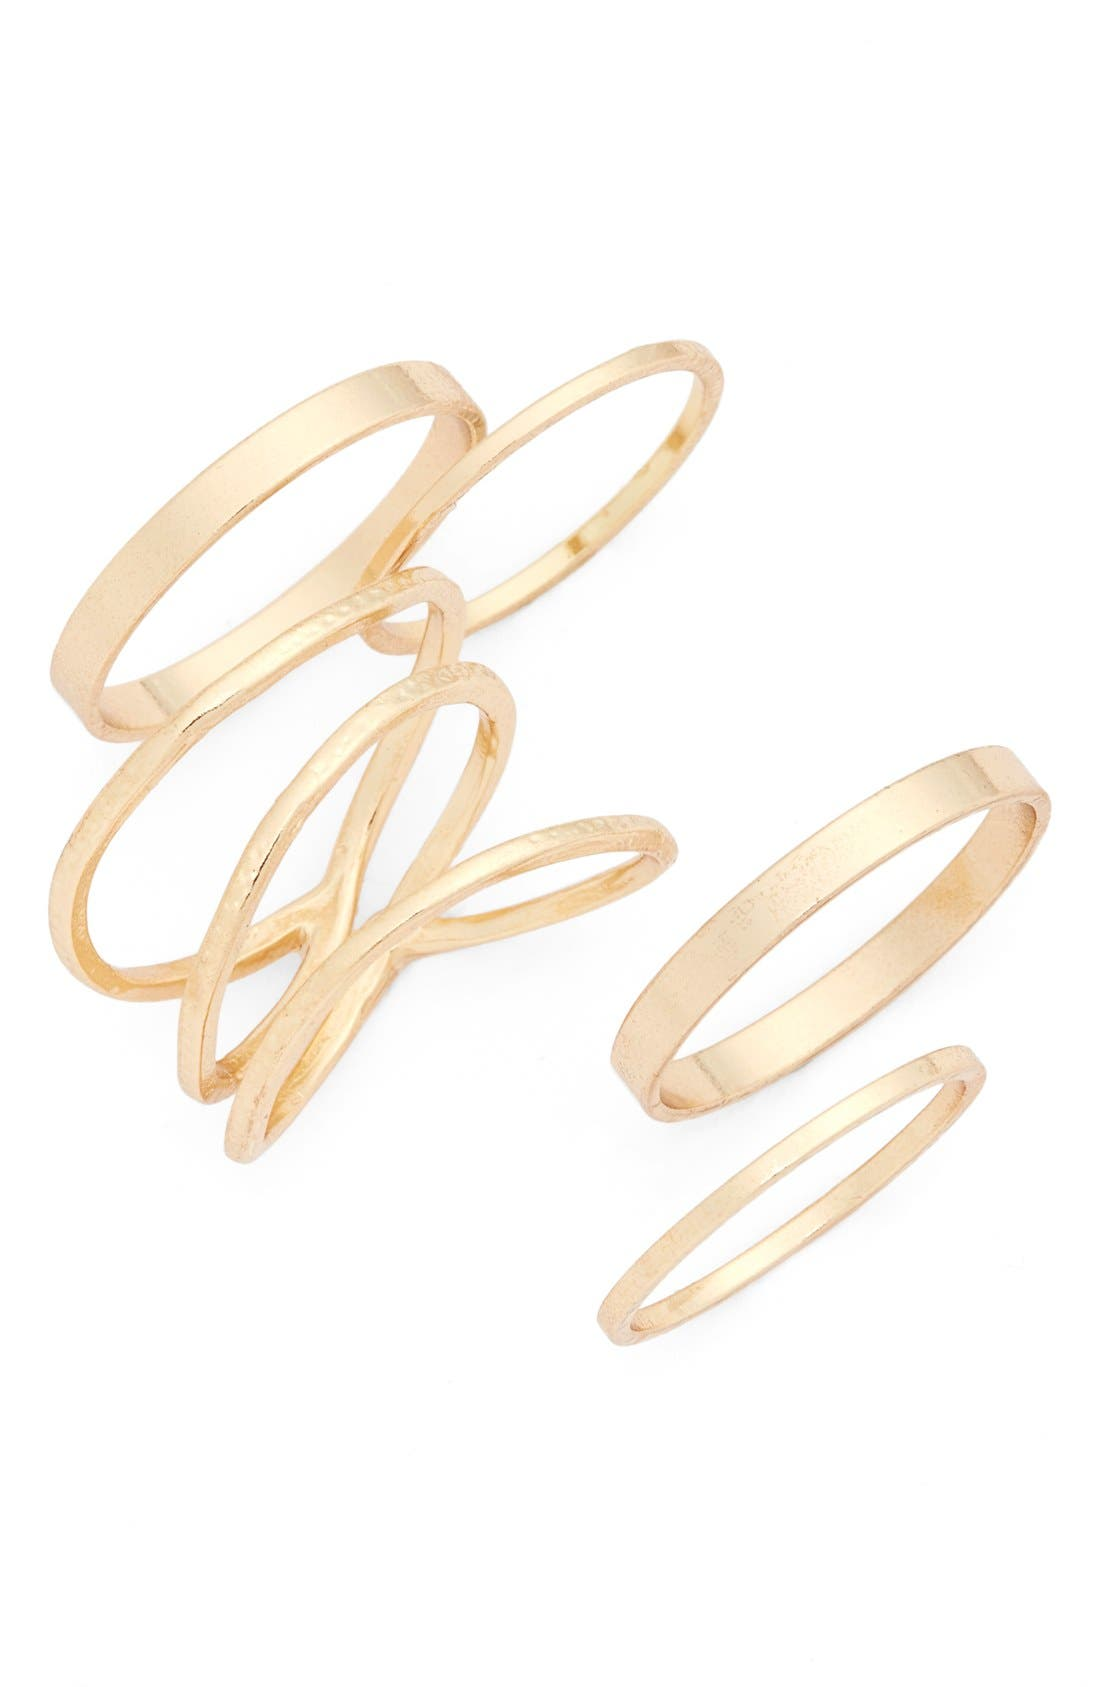 Main Image - BP. Stackable Rings (Set of 5)